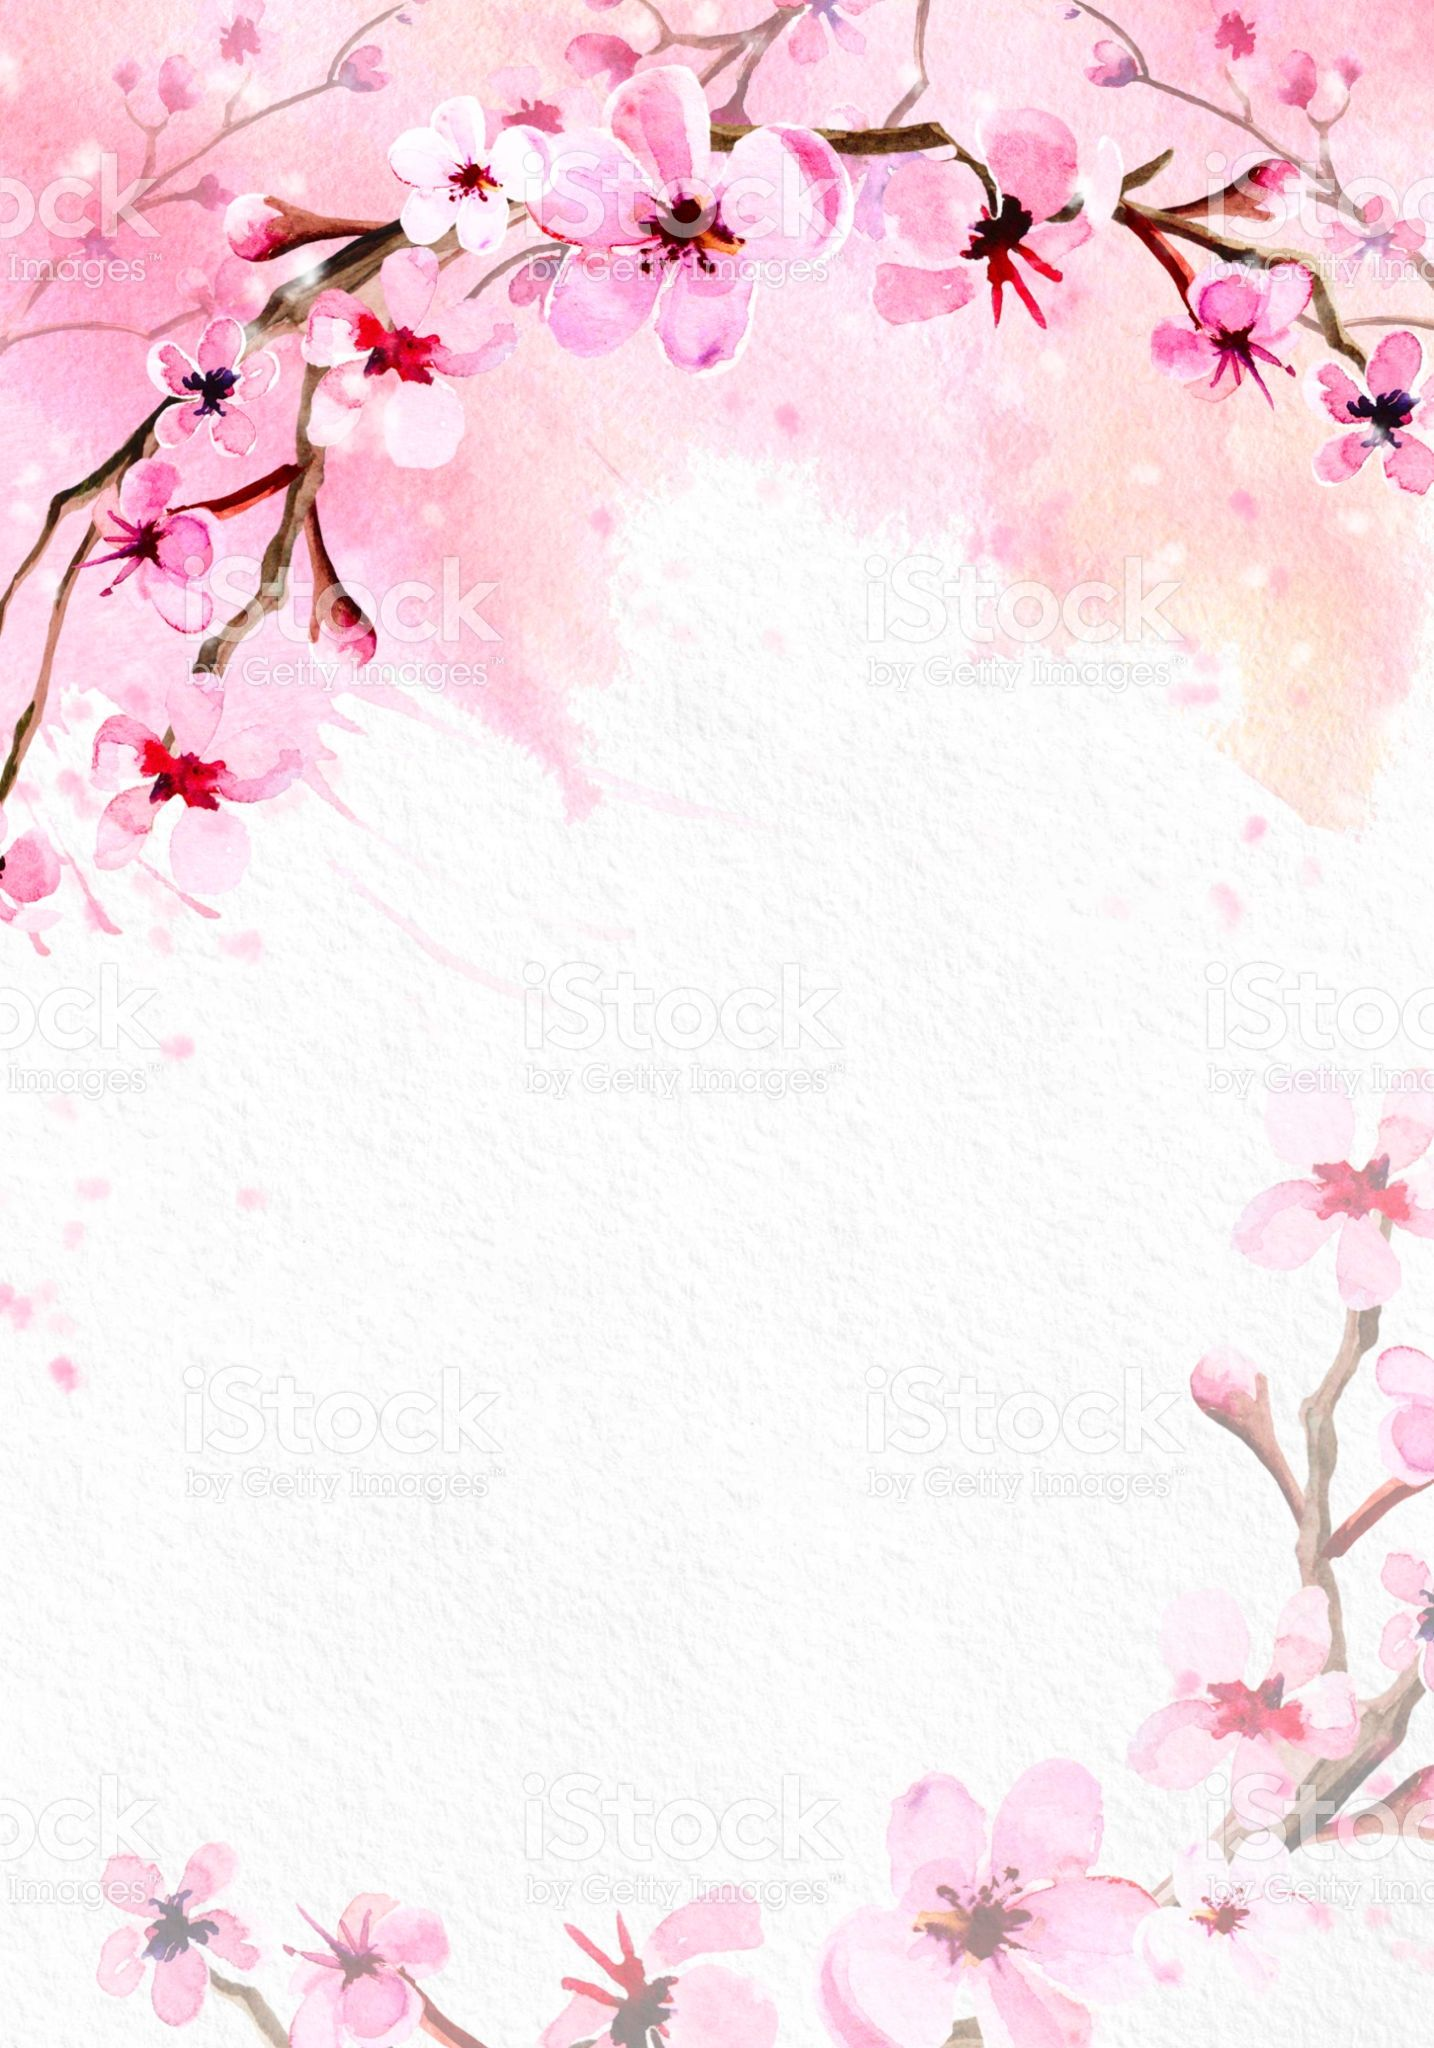 Cherry Blossom On Pink Watercolor Background Royalty Free Cherry Blossom On Pink W Cherry Blossom Watercolor Cherry Blossom Wallpaper Cherry Blossom Background